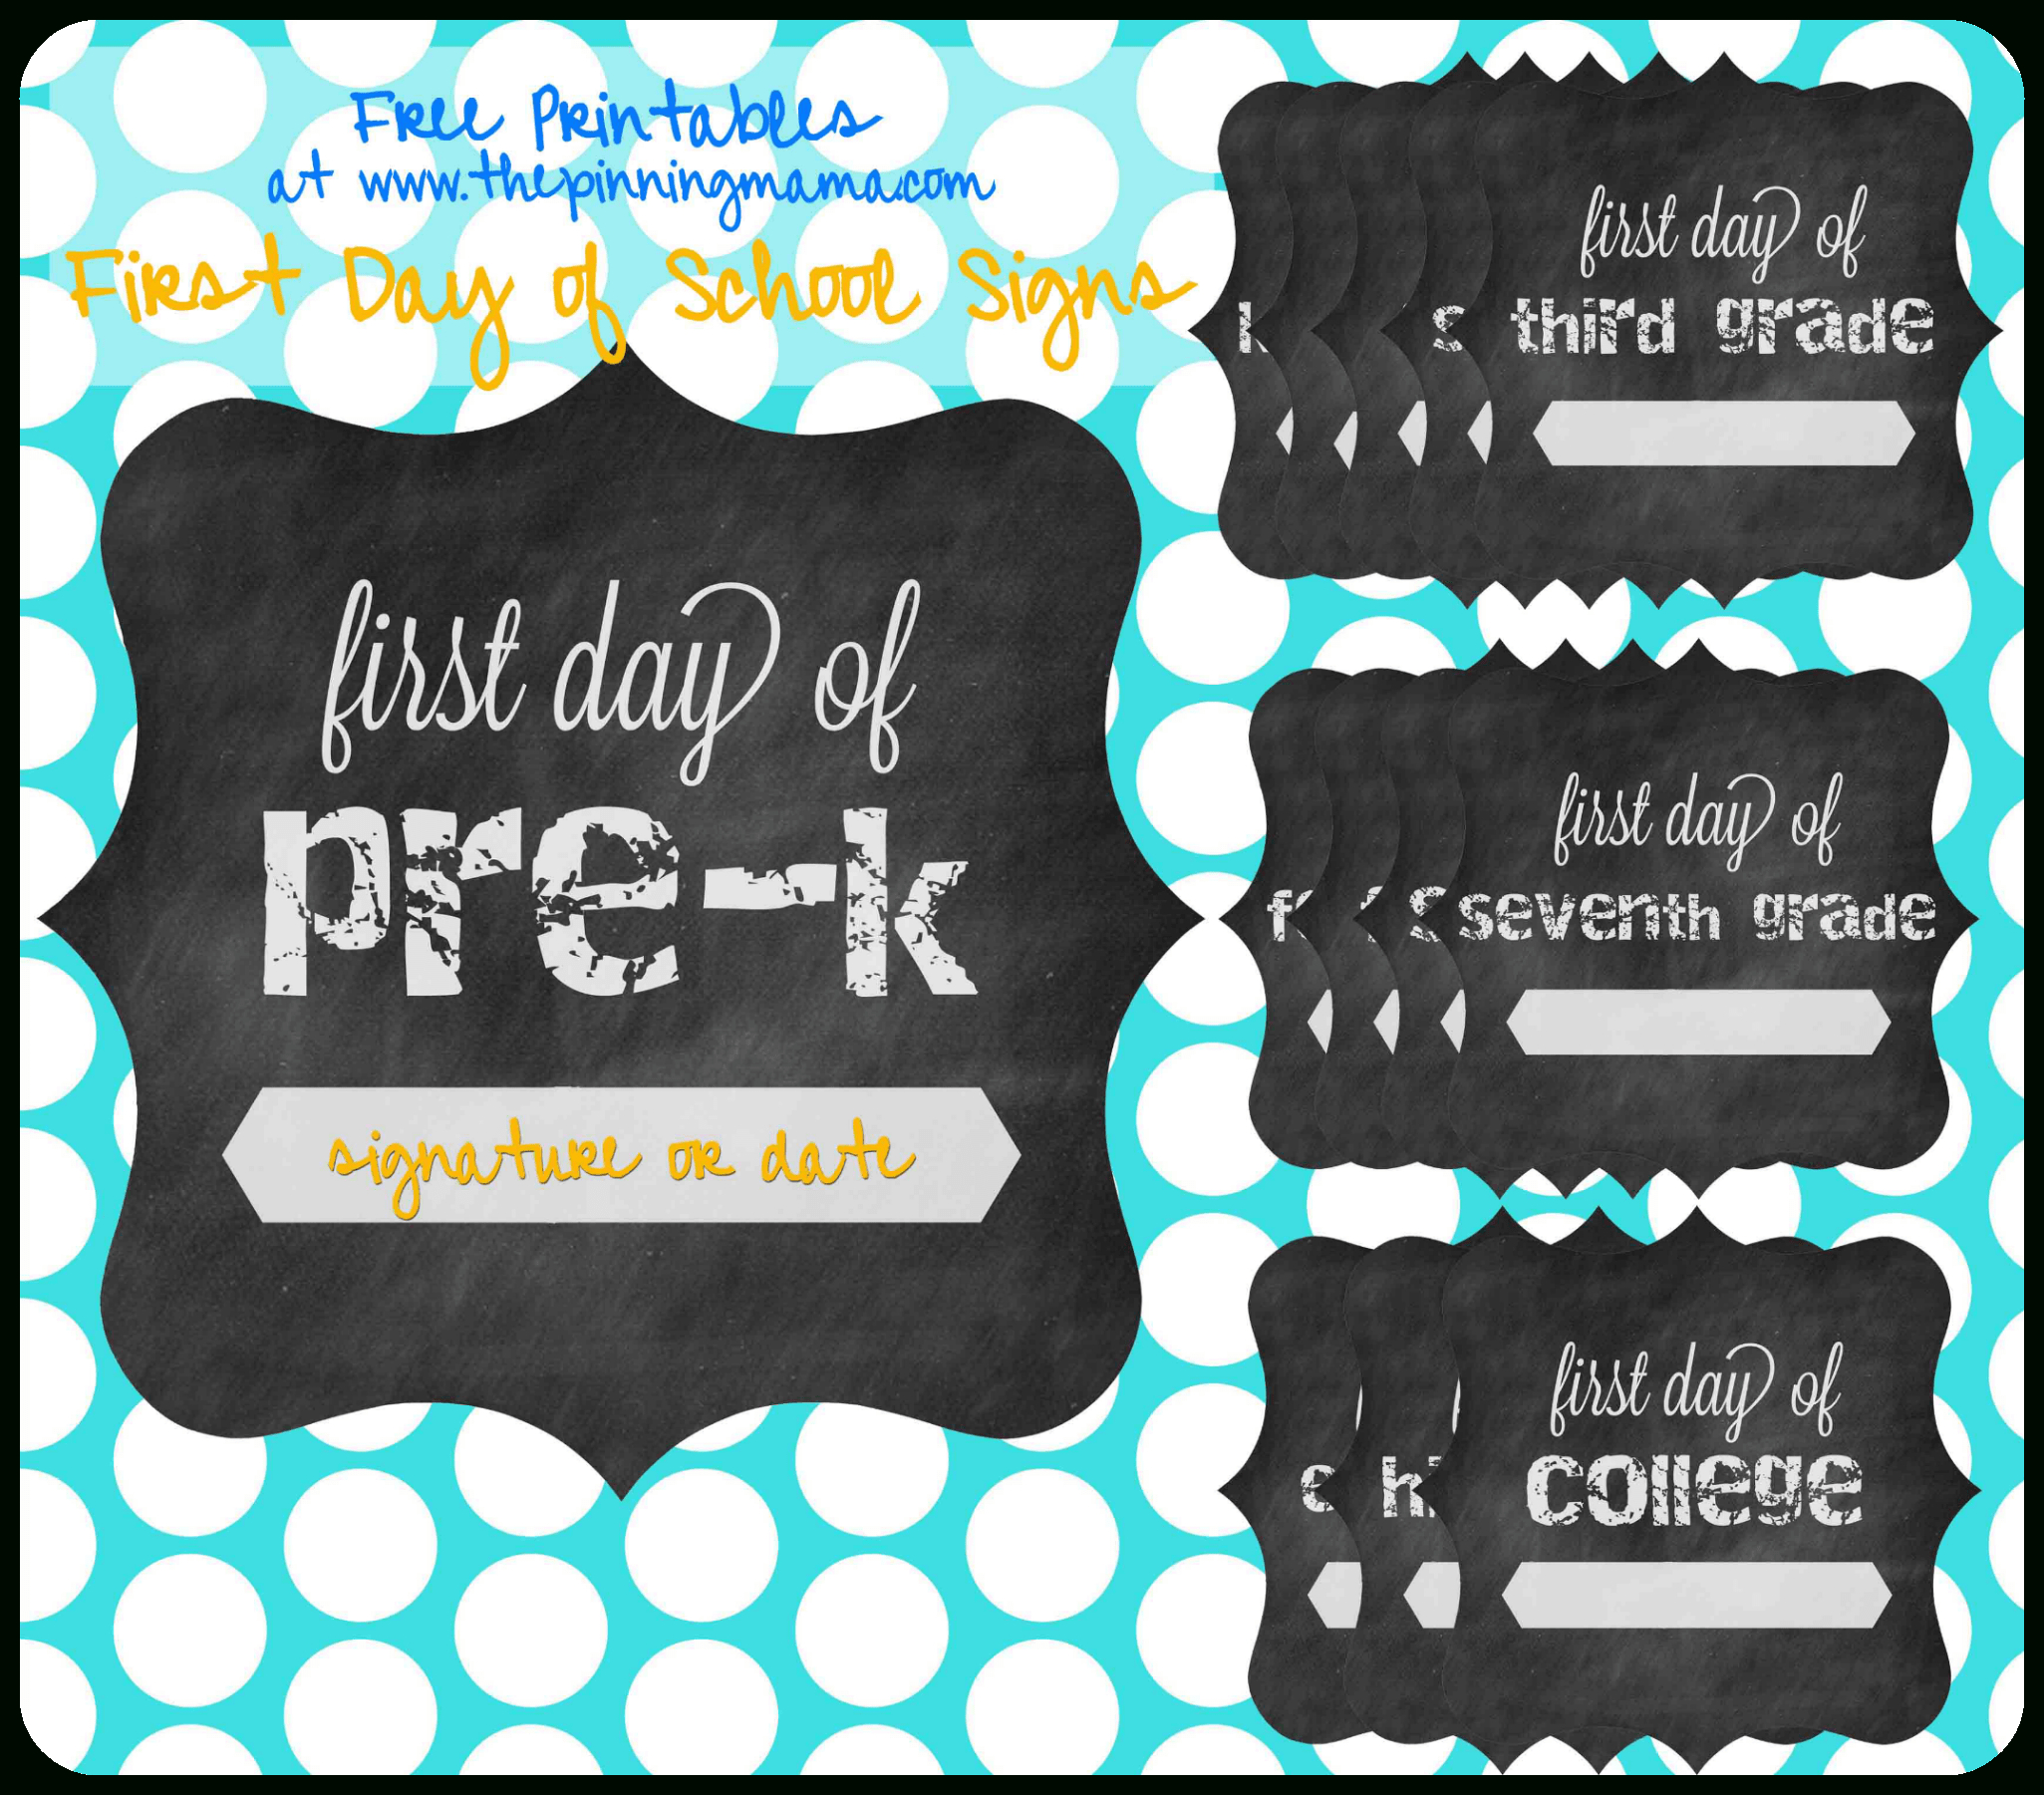 Free Printable} First Day Of School Chalkboard Sign • The Pinning Mama - Free Printable First Day Of School Signs